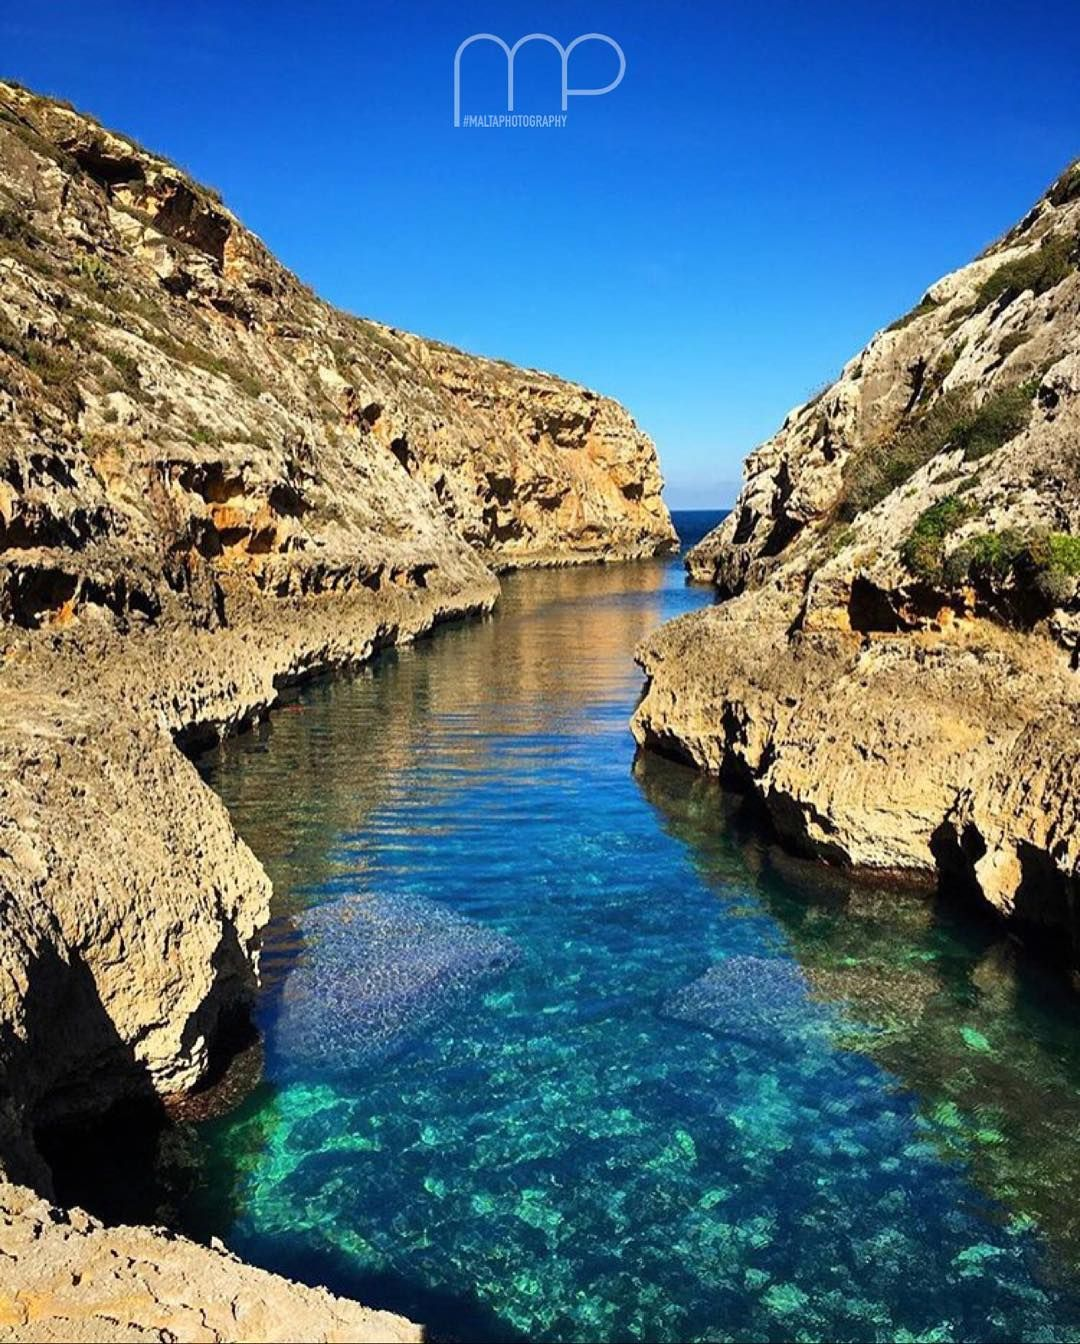 #Weekend is round the corner and here in Malta are still enjoying the sun! - Check out this beautiful photo of Wied il-Ghasri in Gozo!- #Comment your favourite place in #Gozo! - Featured Photographer: @biluiza - Tag your #photos with #MaltaPhotography to get a chance to be #featured on @maltaphotography - http://ift.tt/1fpoK0v - #valley #beach #clear #bay #picturesque #colours #island #jj #Malta #January #Photography #instagramhub #instafamous #photooftheday #picoftheday #l4l #beautiful…